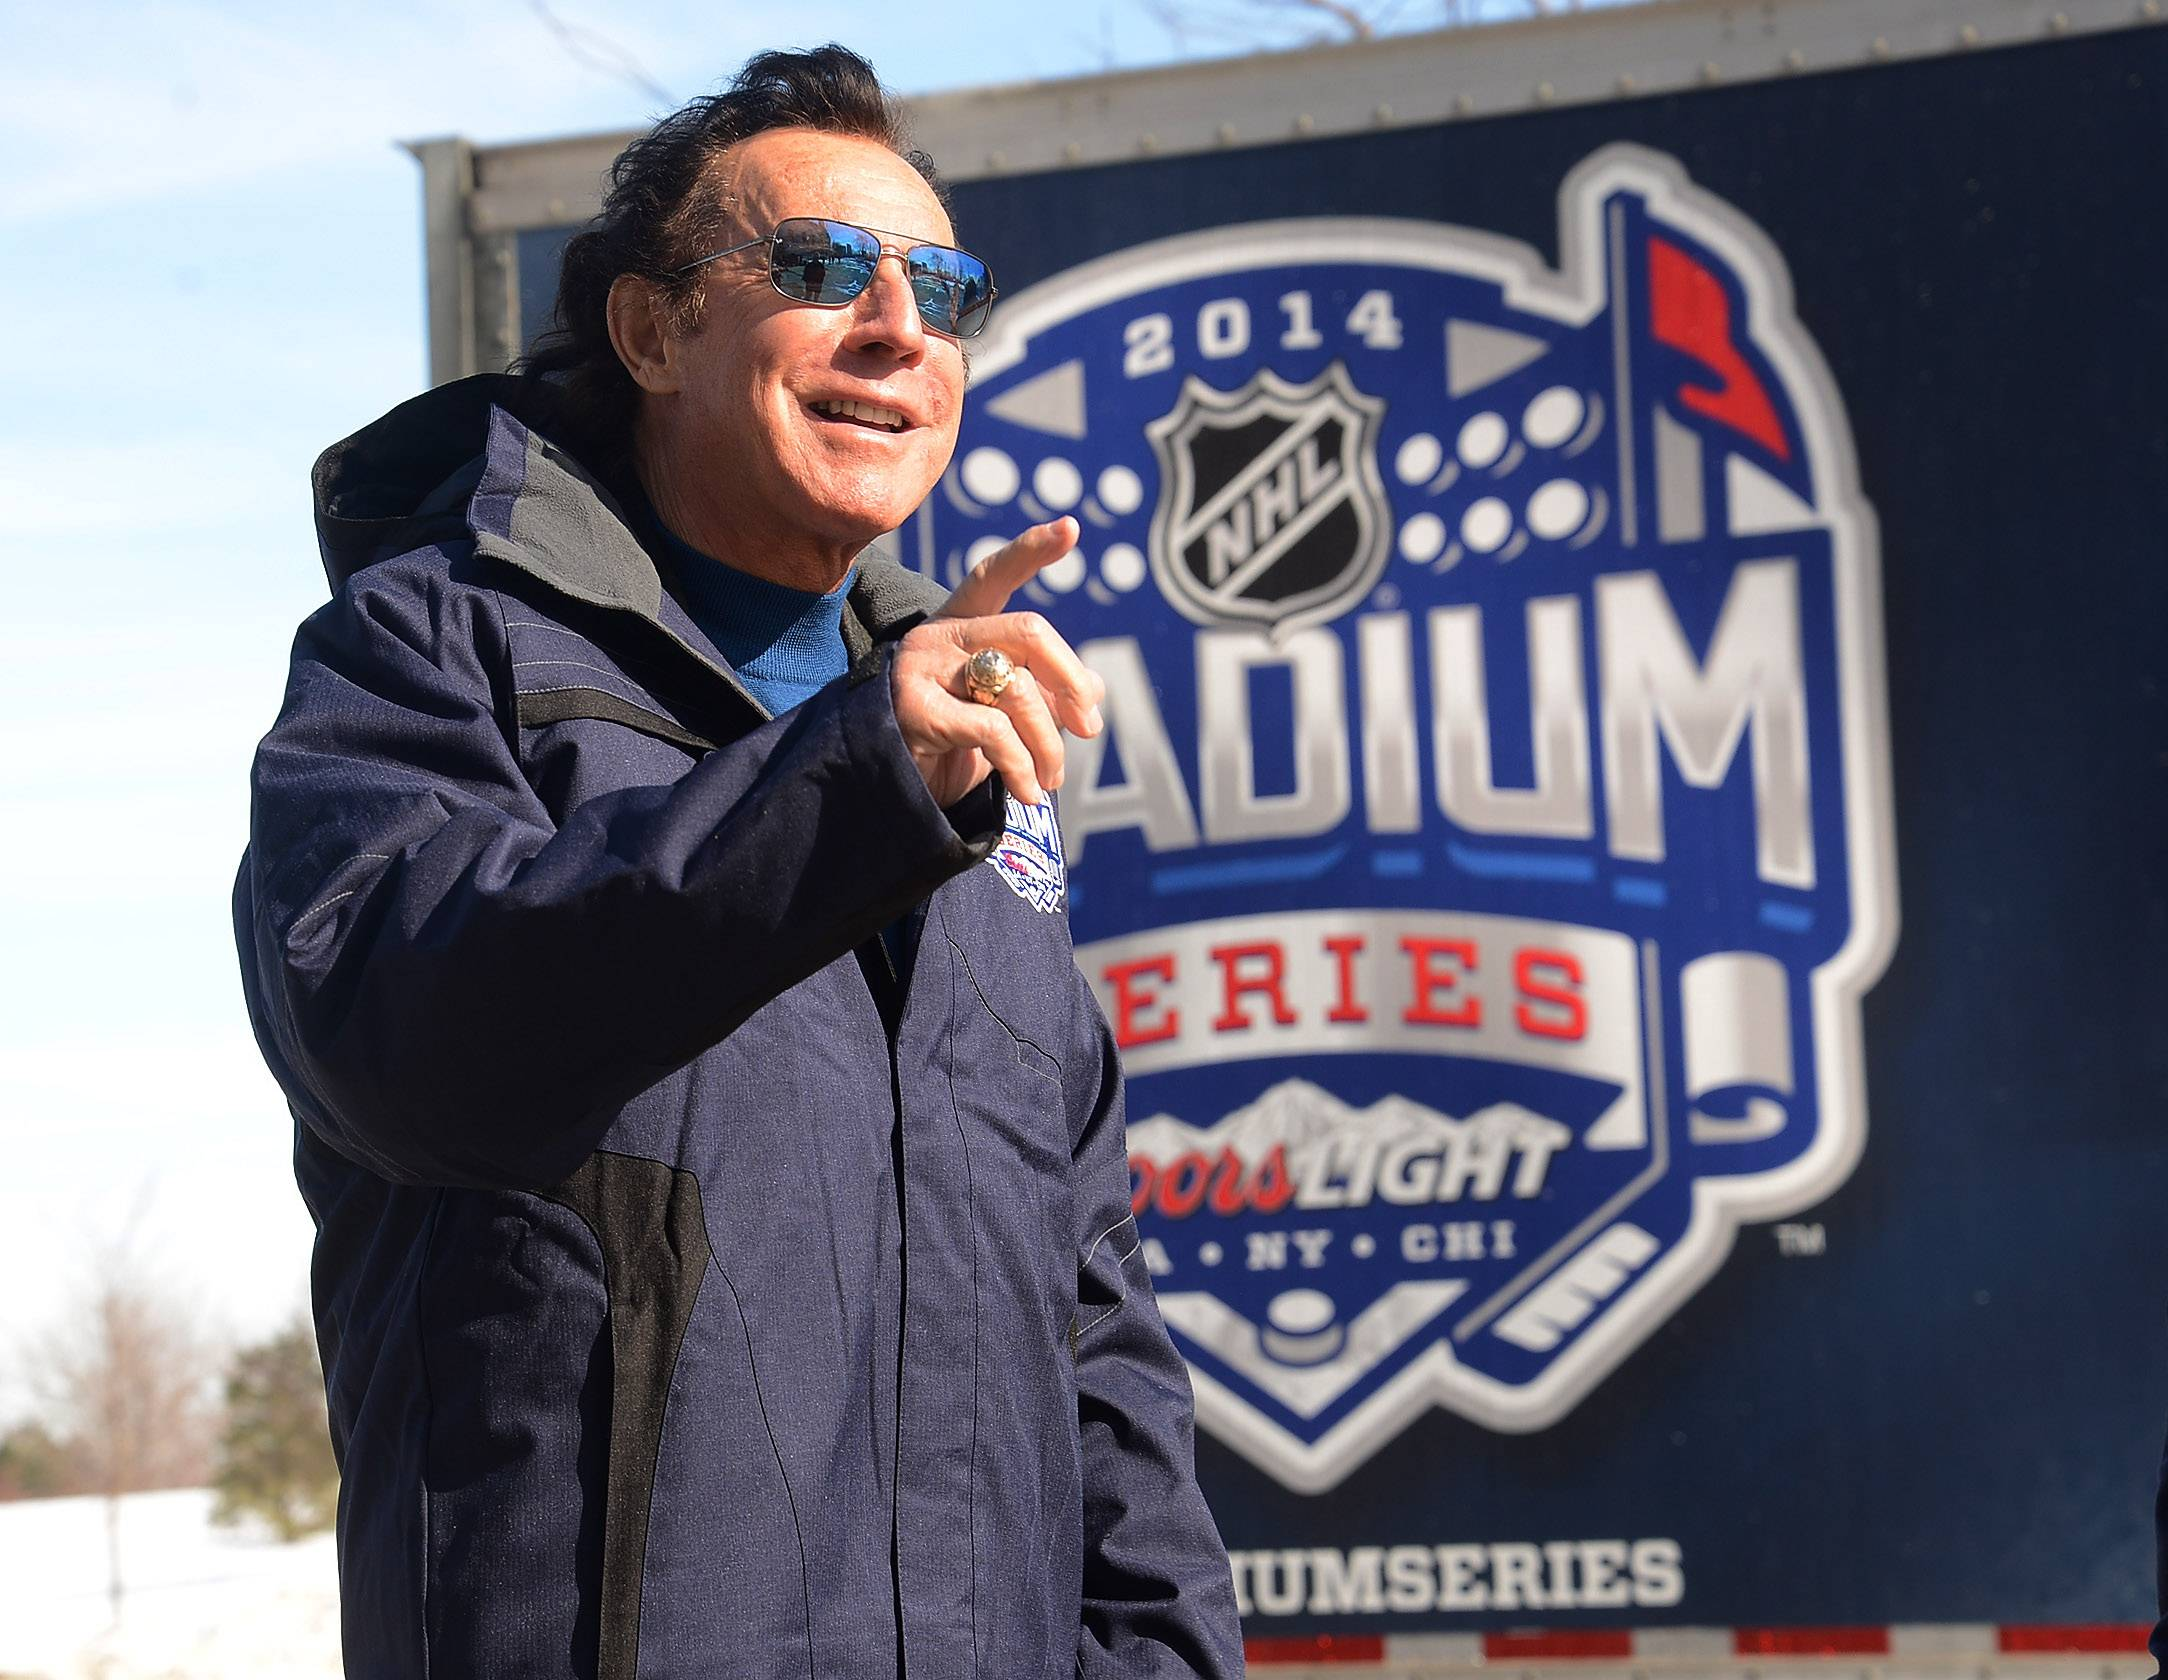 Blackhawks Hall of Fame goal Tony Esposito has fond memories of playing outdoors games while growing up in Sault Ste. Marie, Ontario.